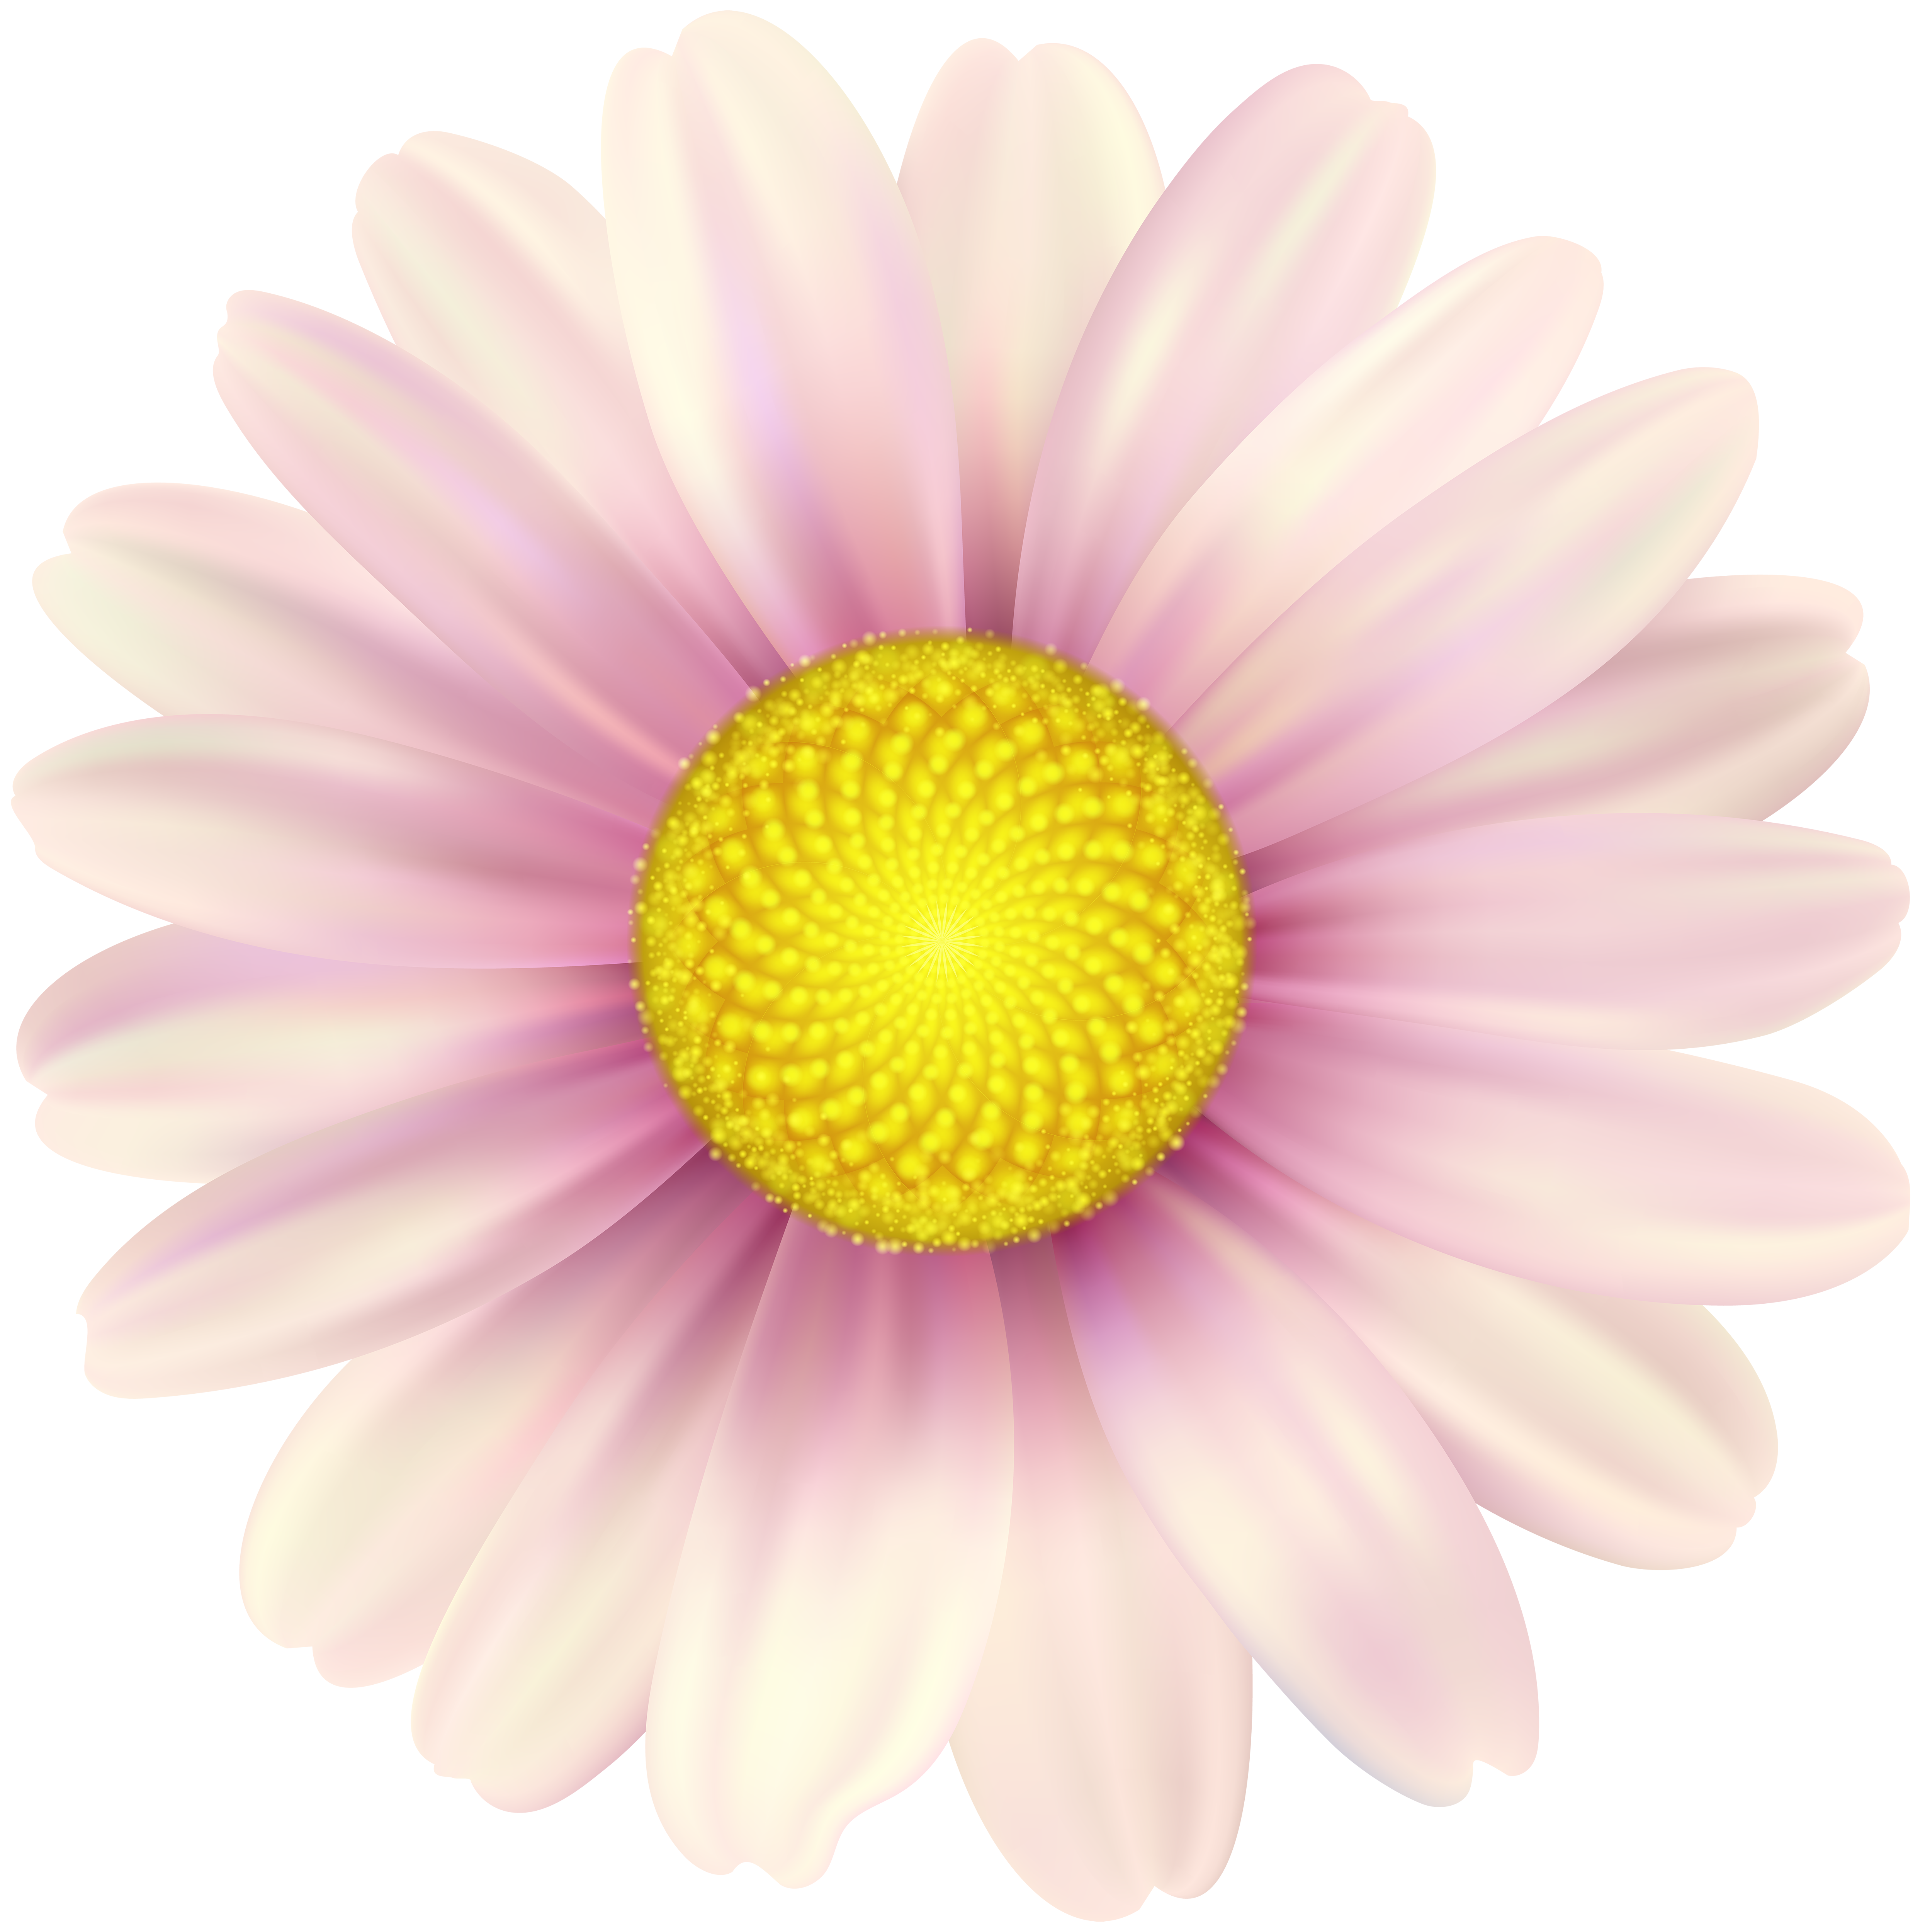 Pink daisy flower clipart svg transparent download Pink Daisy Clip Art Image   Gallery Yopriceville - High-Quality ... svg transparent download